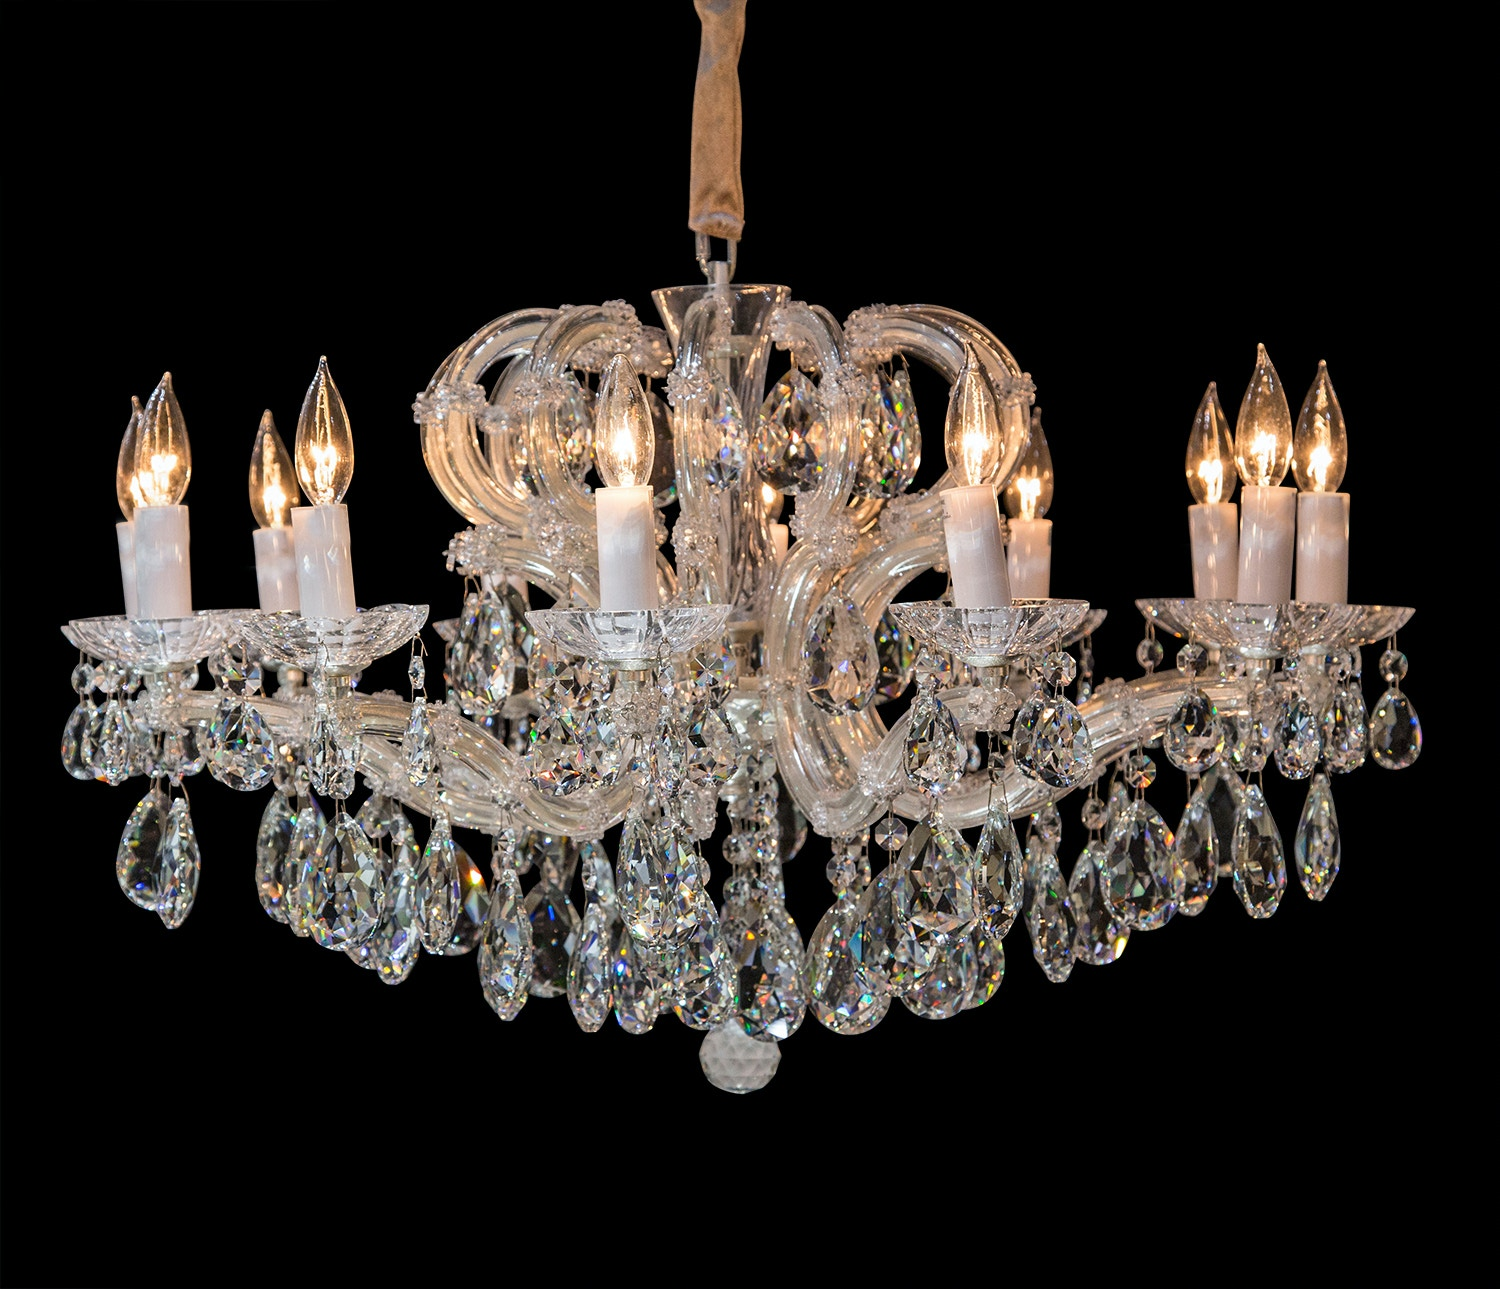 Aico Furniture Portola 12 Light Chandelier LT-CH923-12SVL : svl lighting - azcodes.com